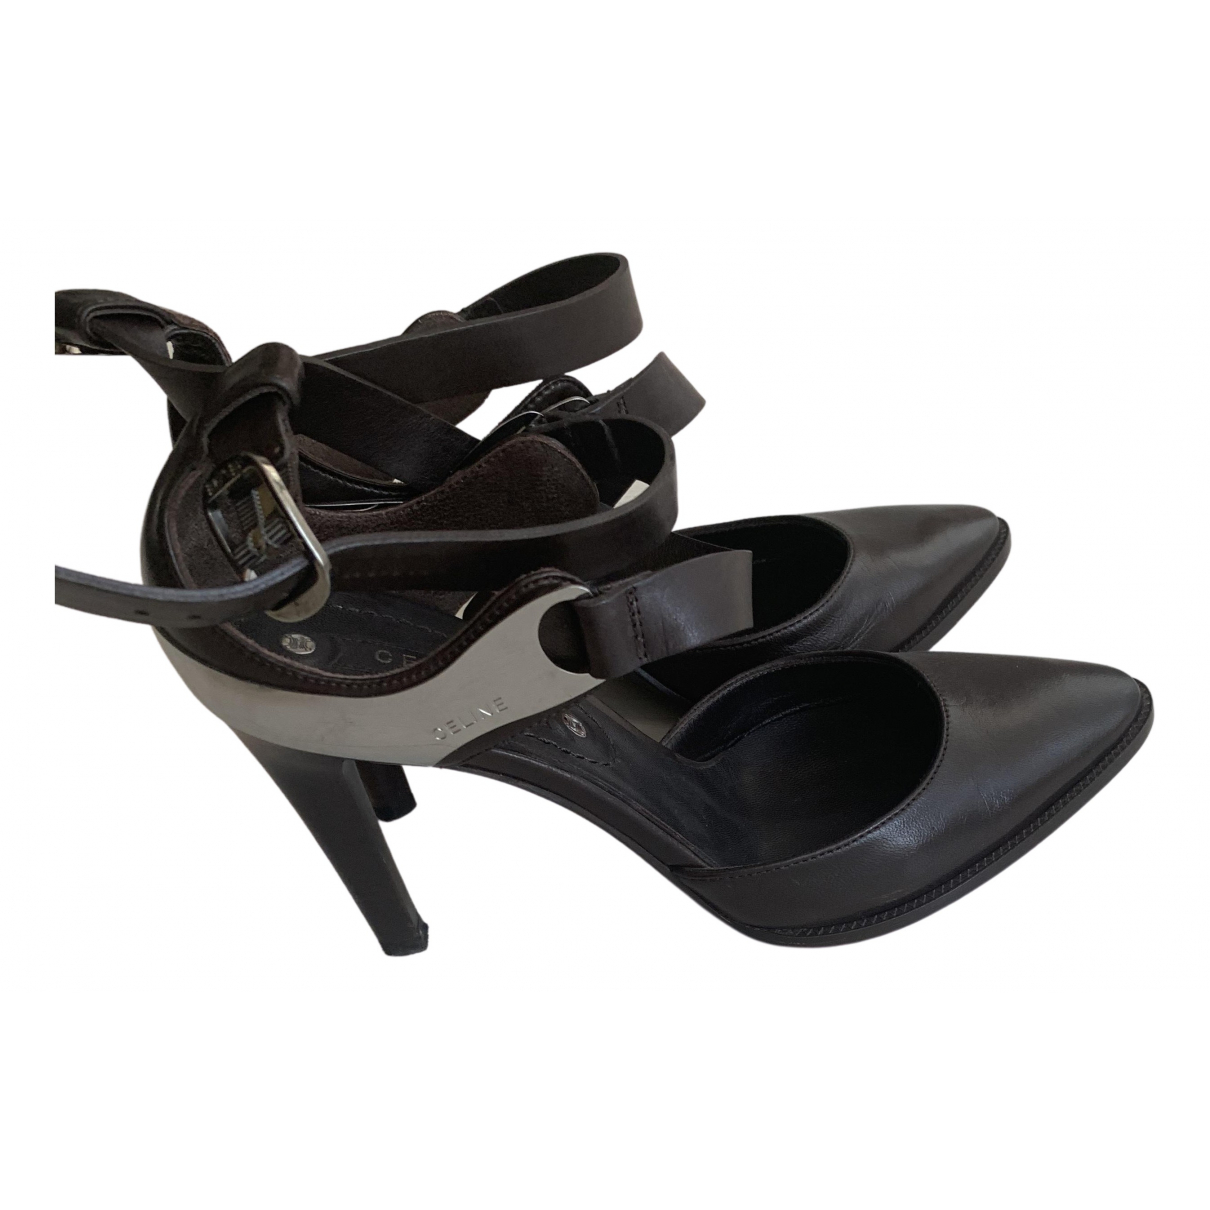 Celine \N Brown Leather Sandals for Women 35 EU